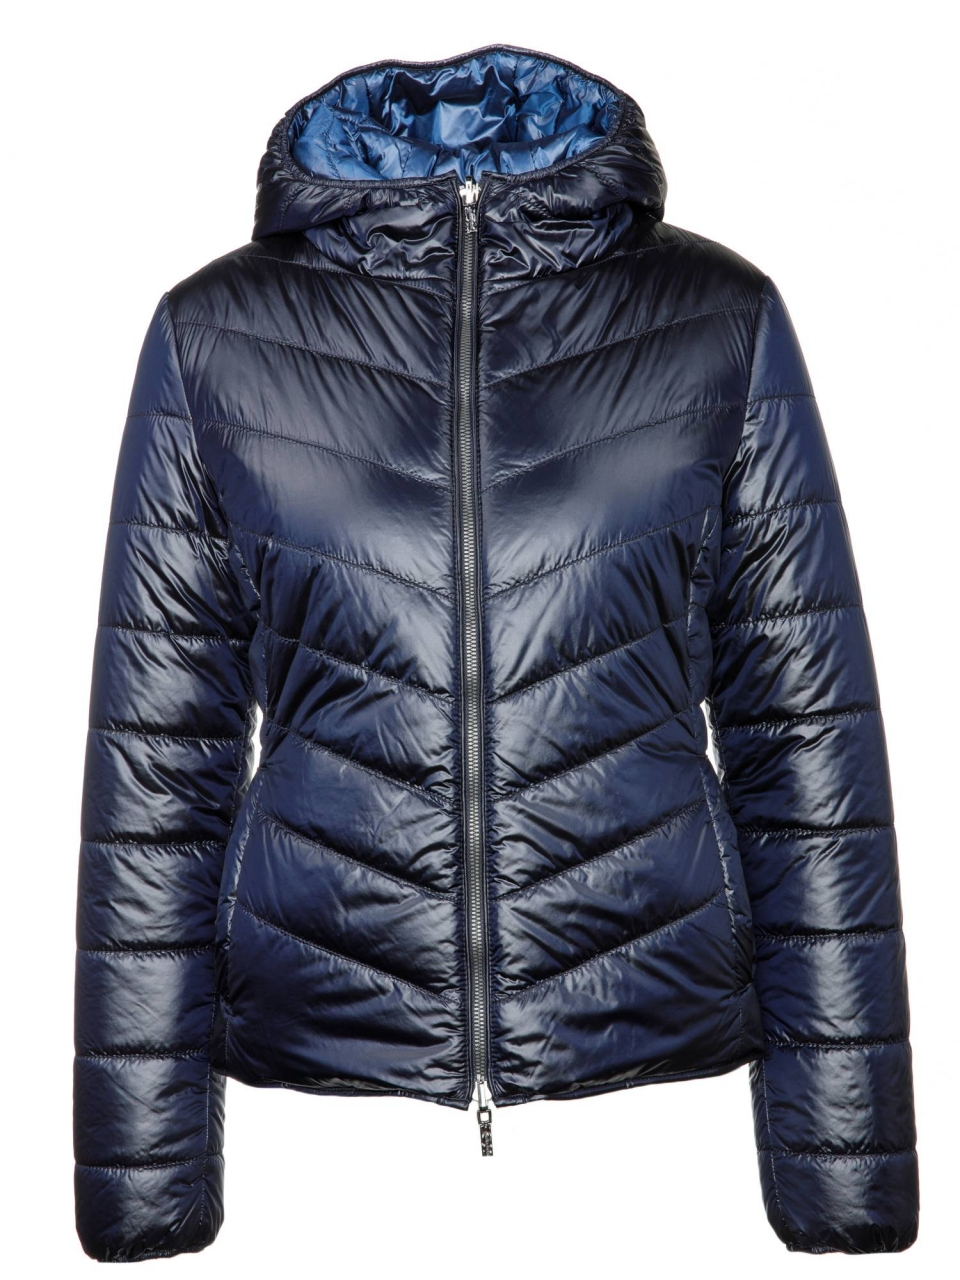 BOSS ORANGE Steppjacke Otarra3 mit PrimaLoft Füllung